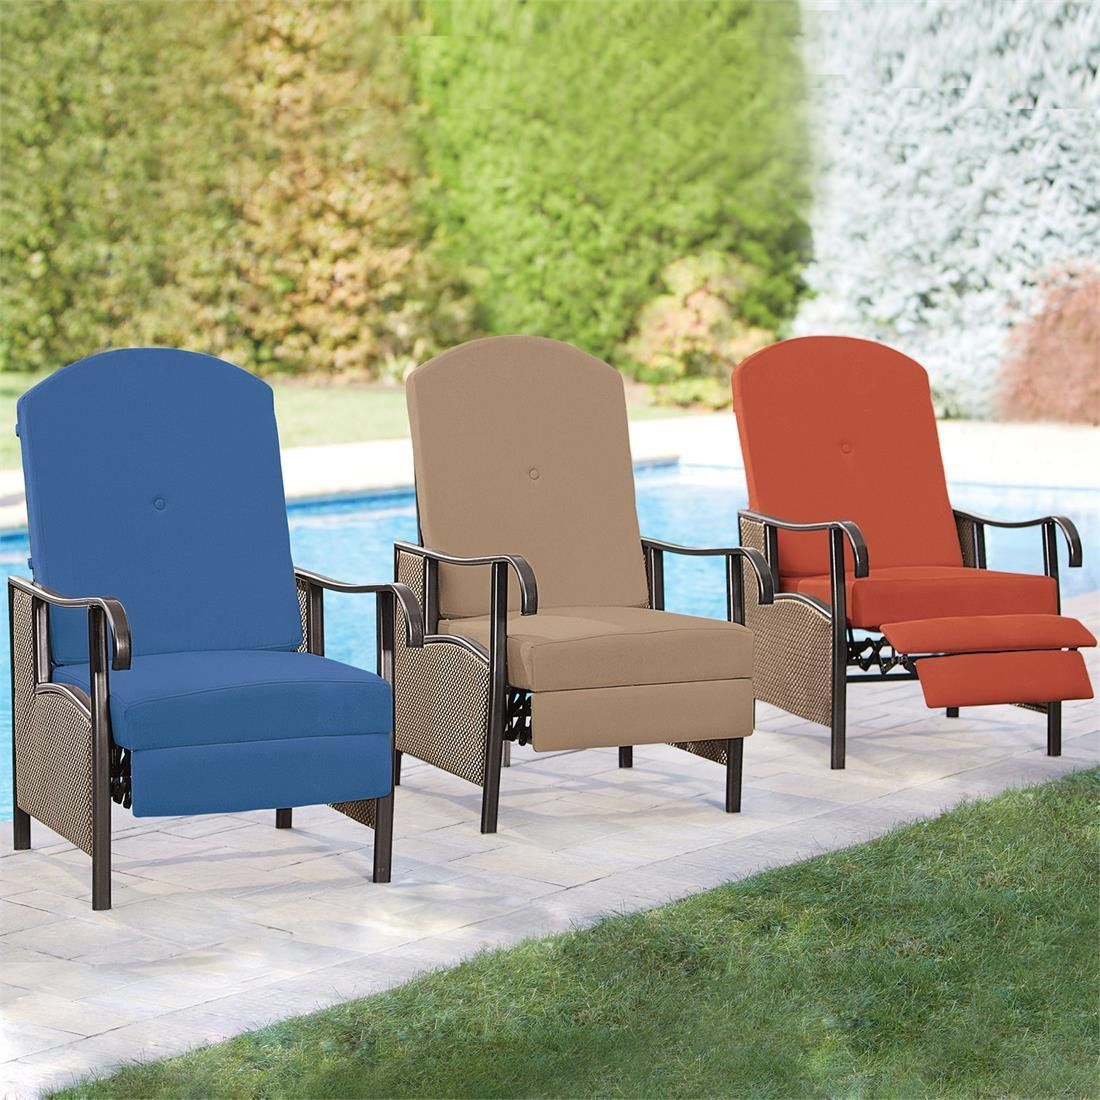 Patio Recliner Chairs Outdoor Recliners For The Patio Or Poolside